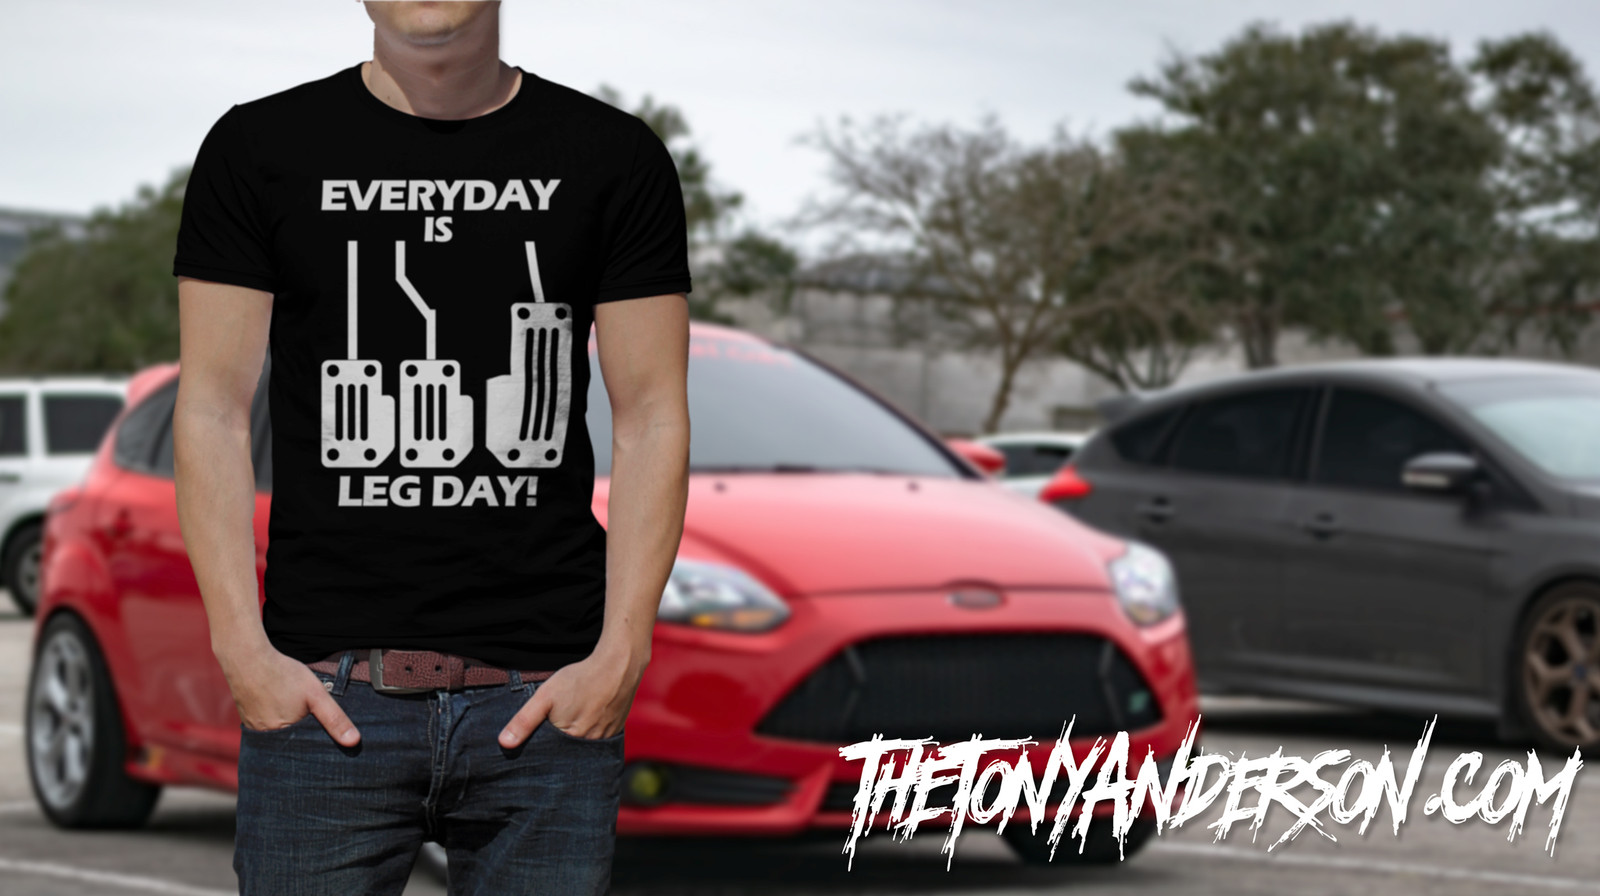 Everyday is Leg Day Shirt